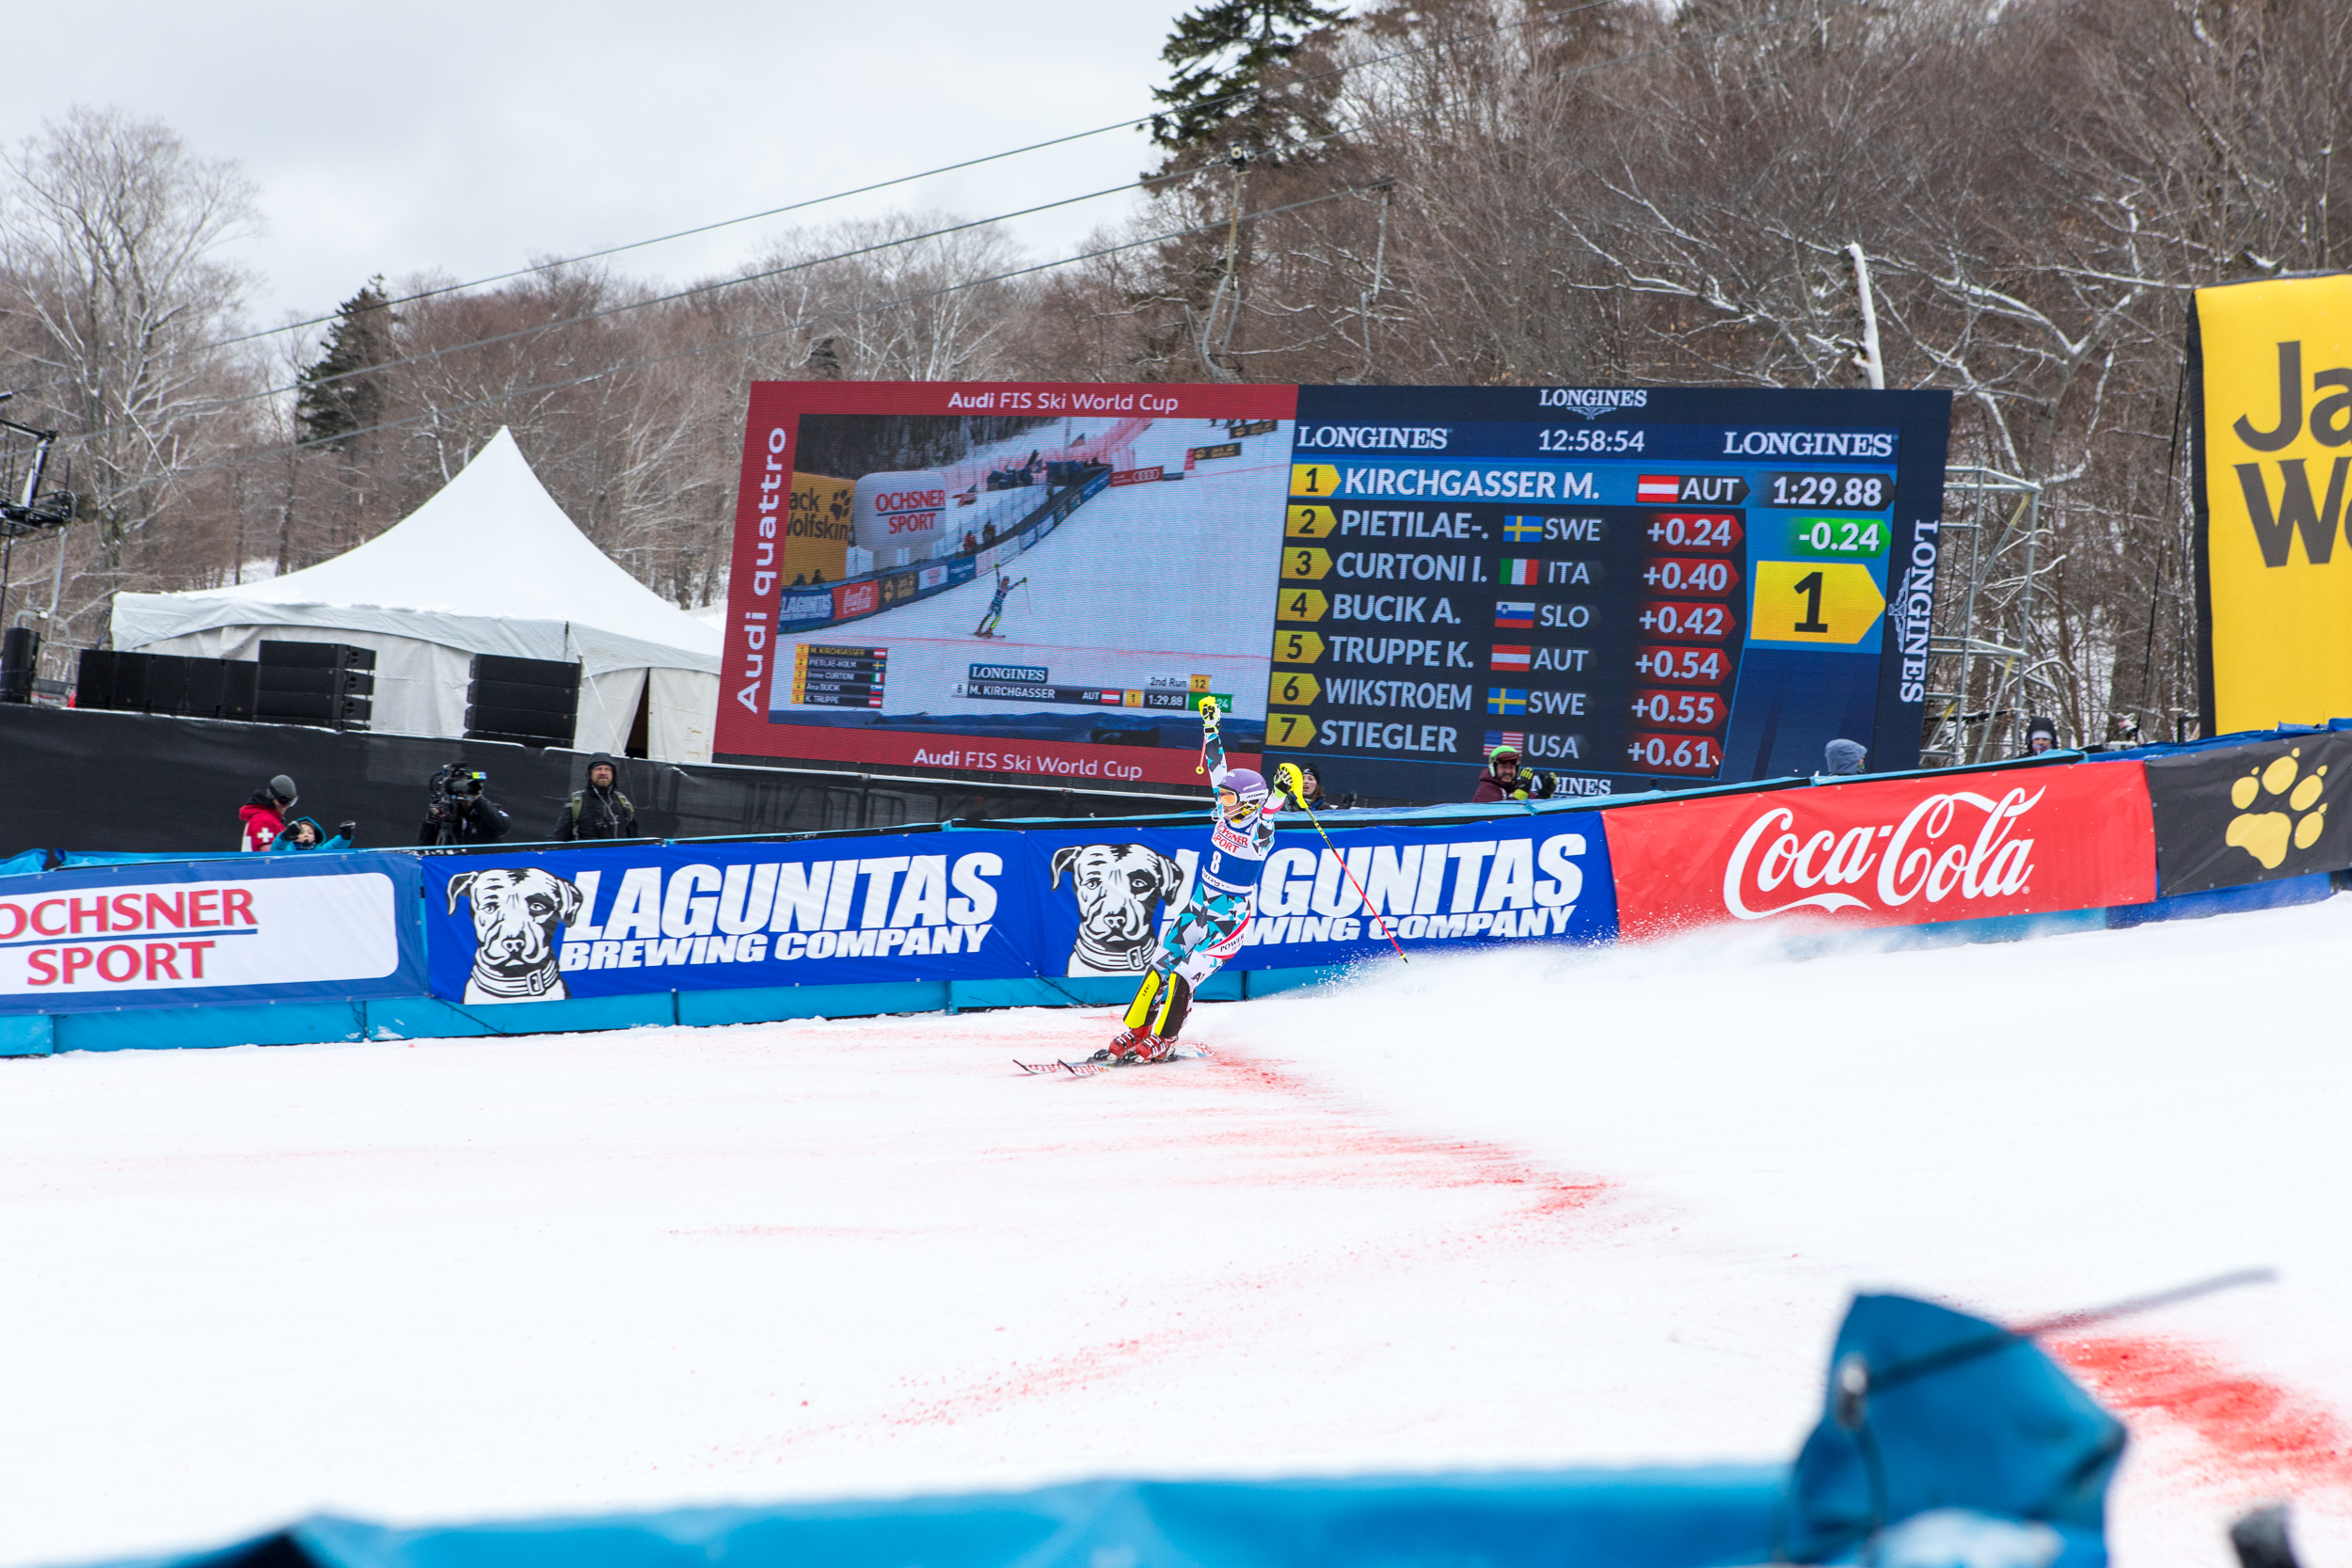 Killington-World-Cup-KIRCHGASSER-Michaela-finish.jpg